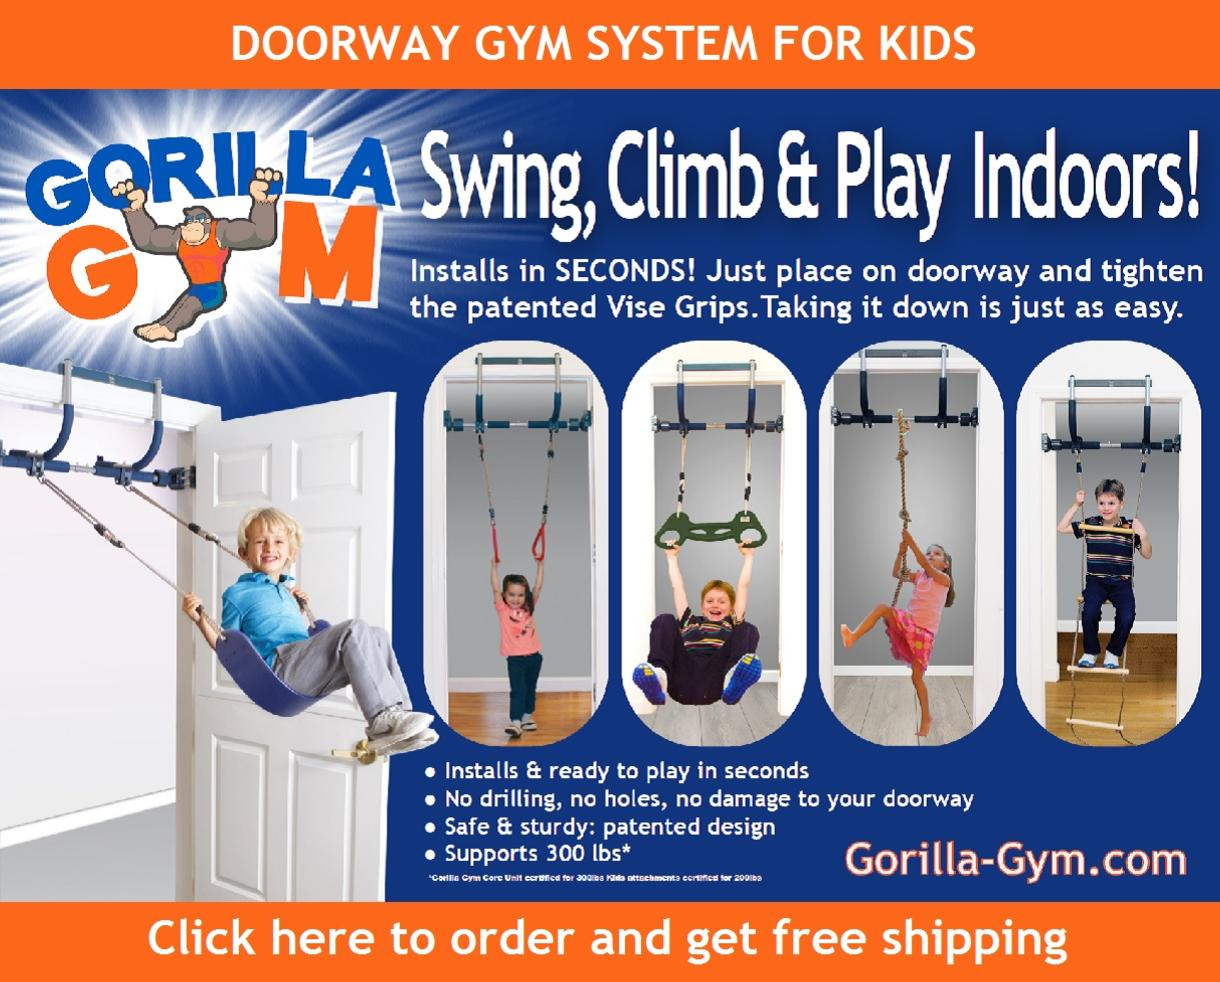 Deal Swing Climb And Play Indoors With Gorilla Gym Kids